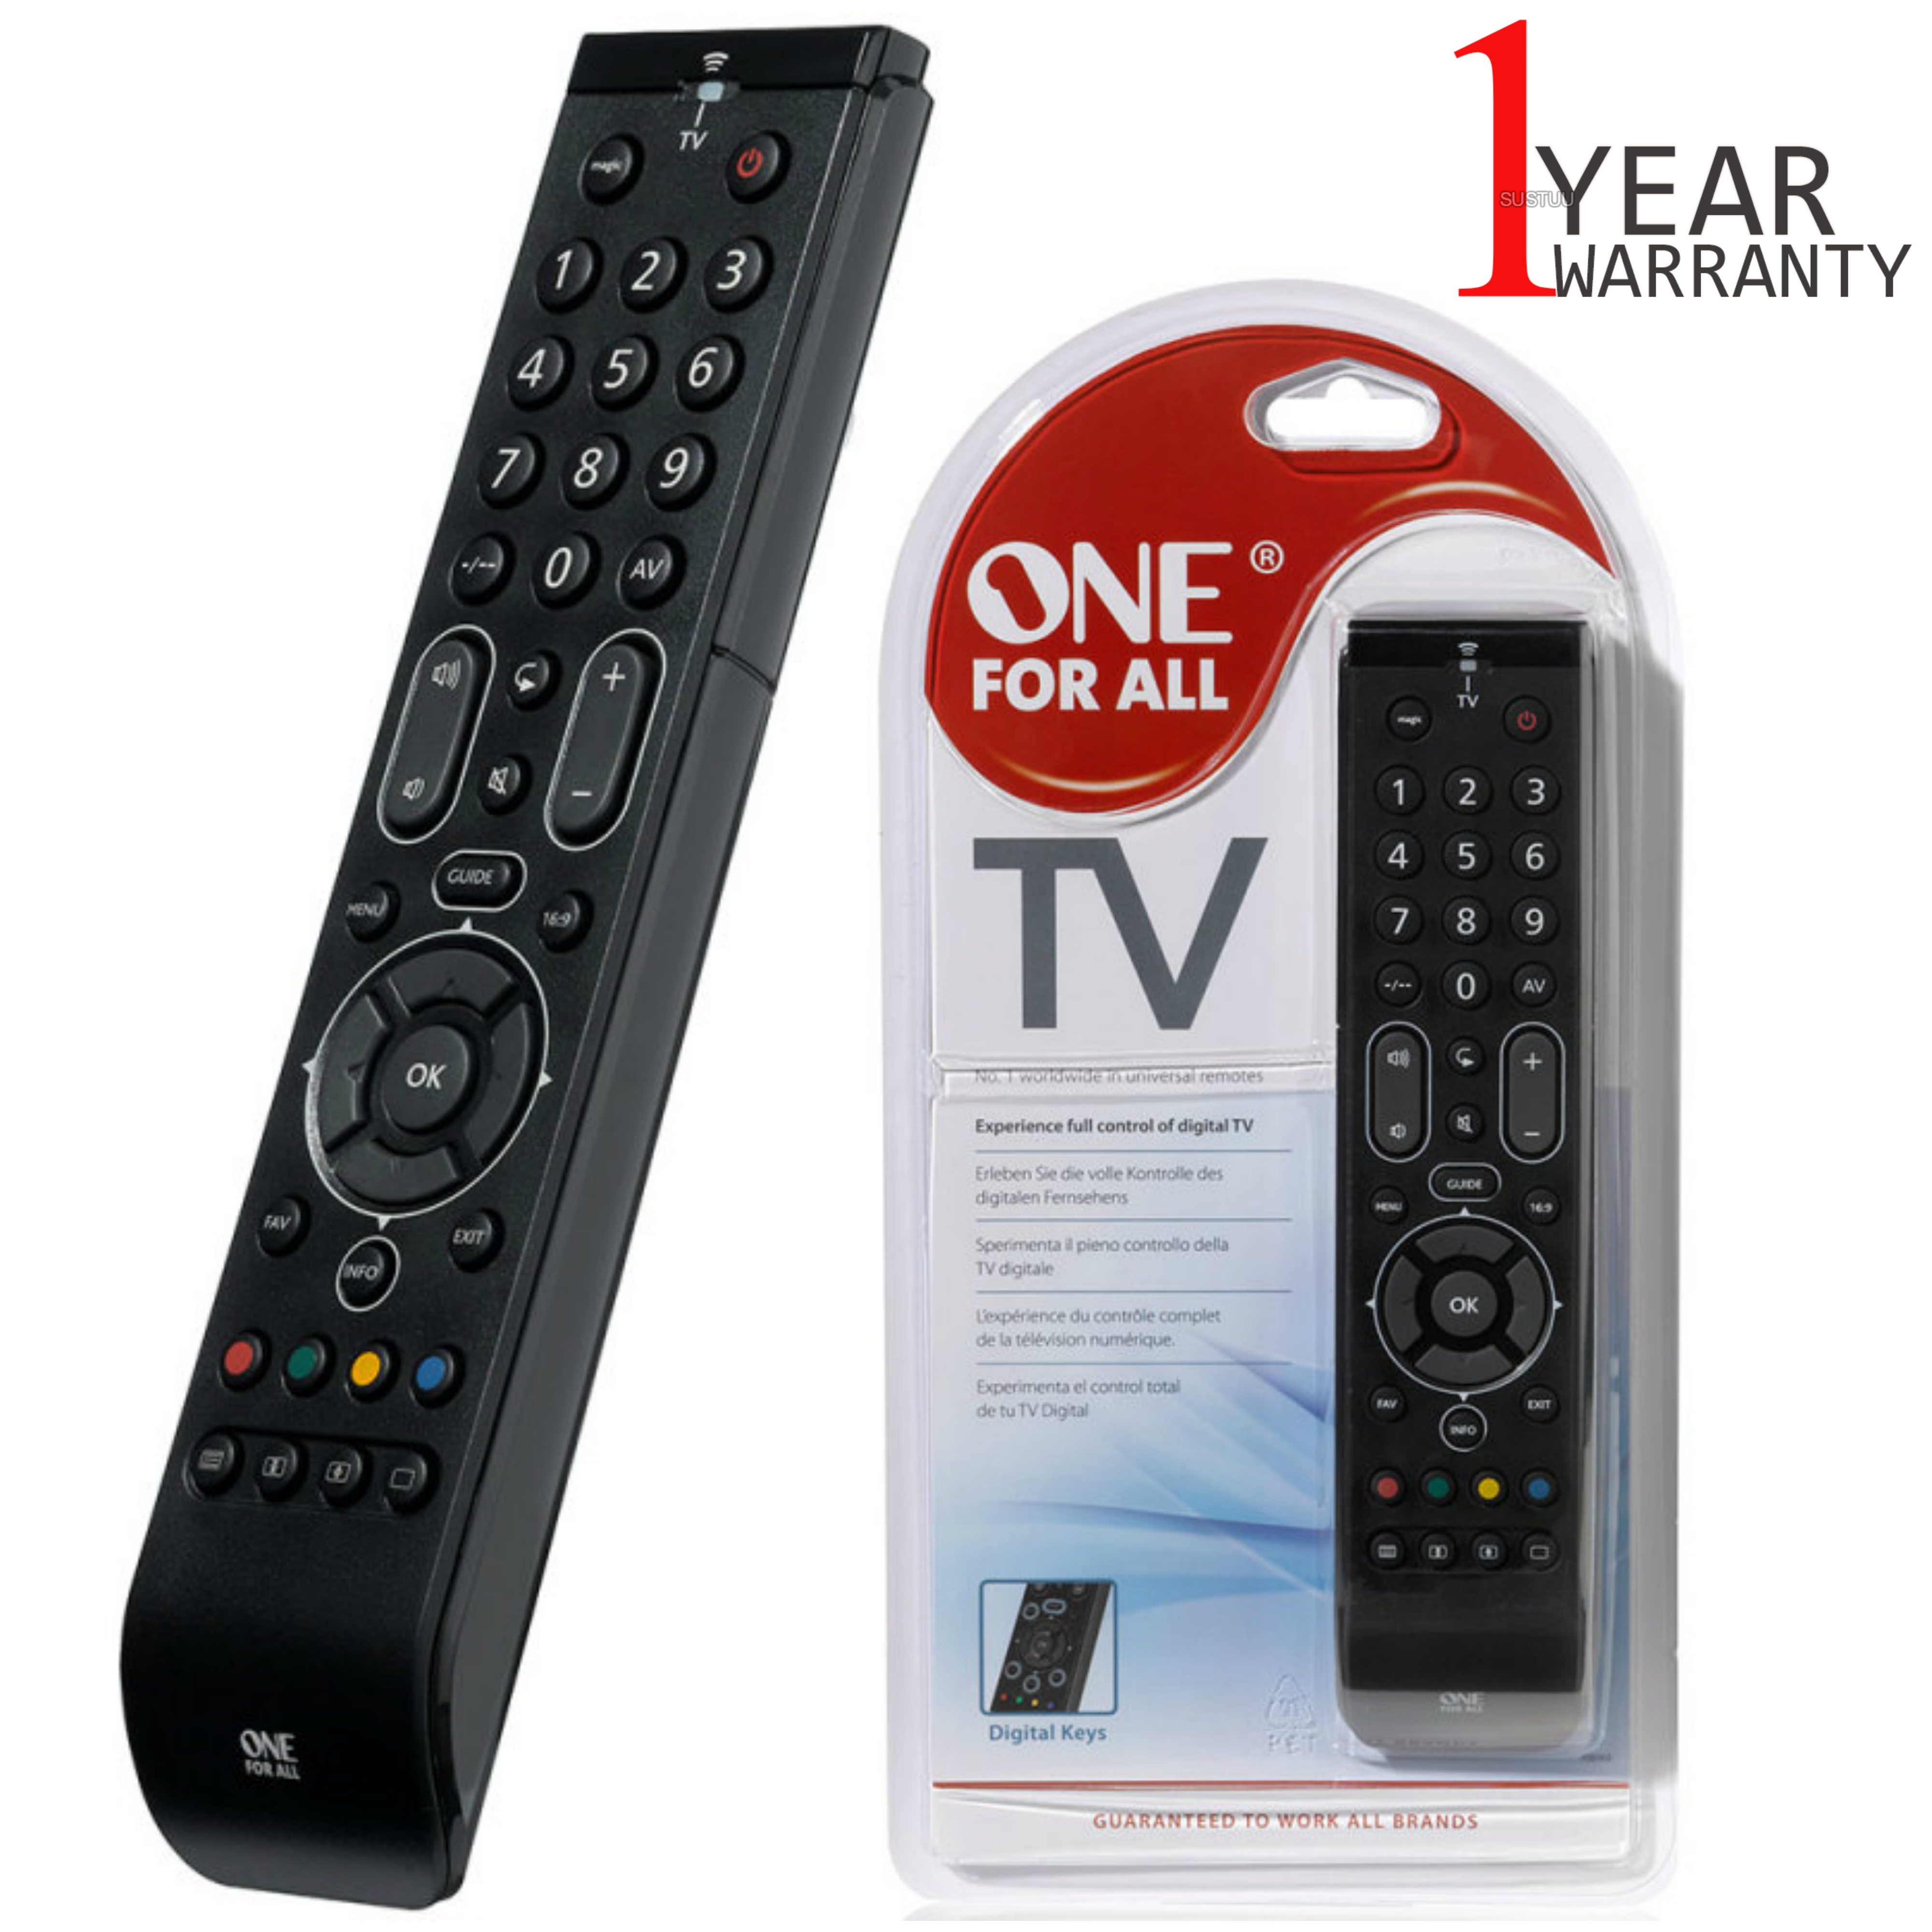 One For All Essence Universal Remote Control For TV | Easy Setup | Black | URC7110 | NEW